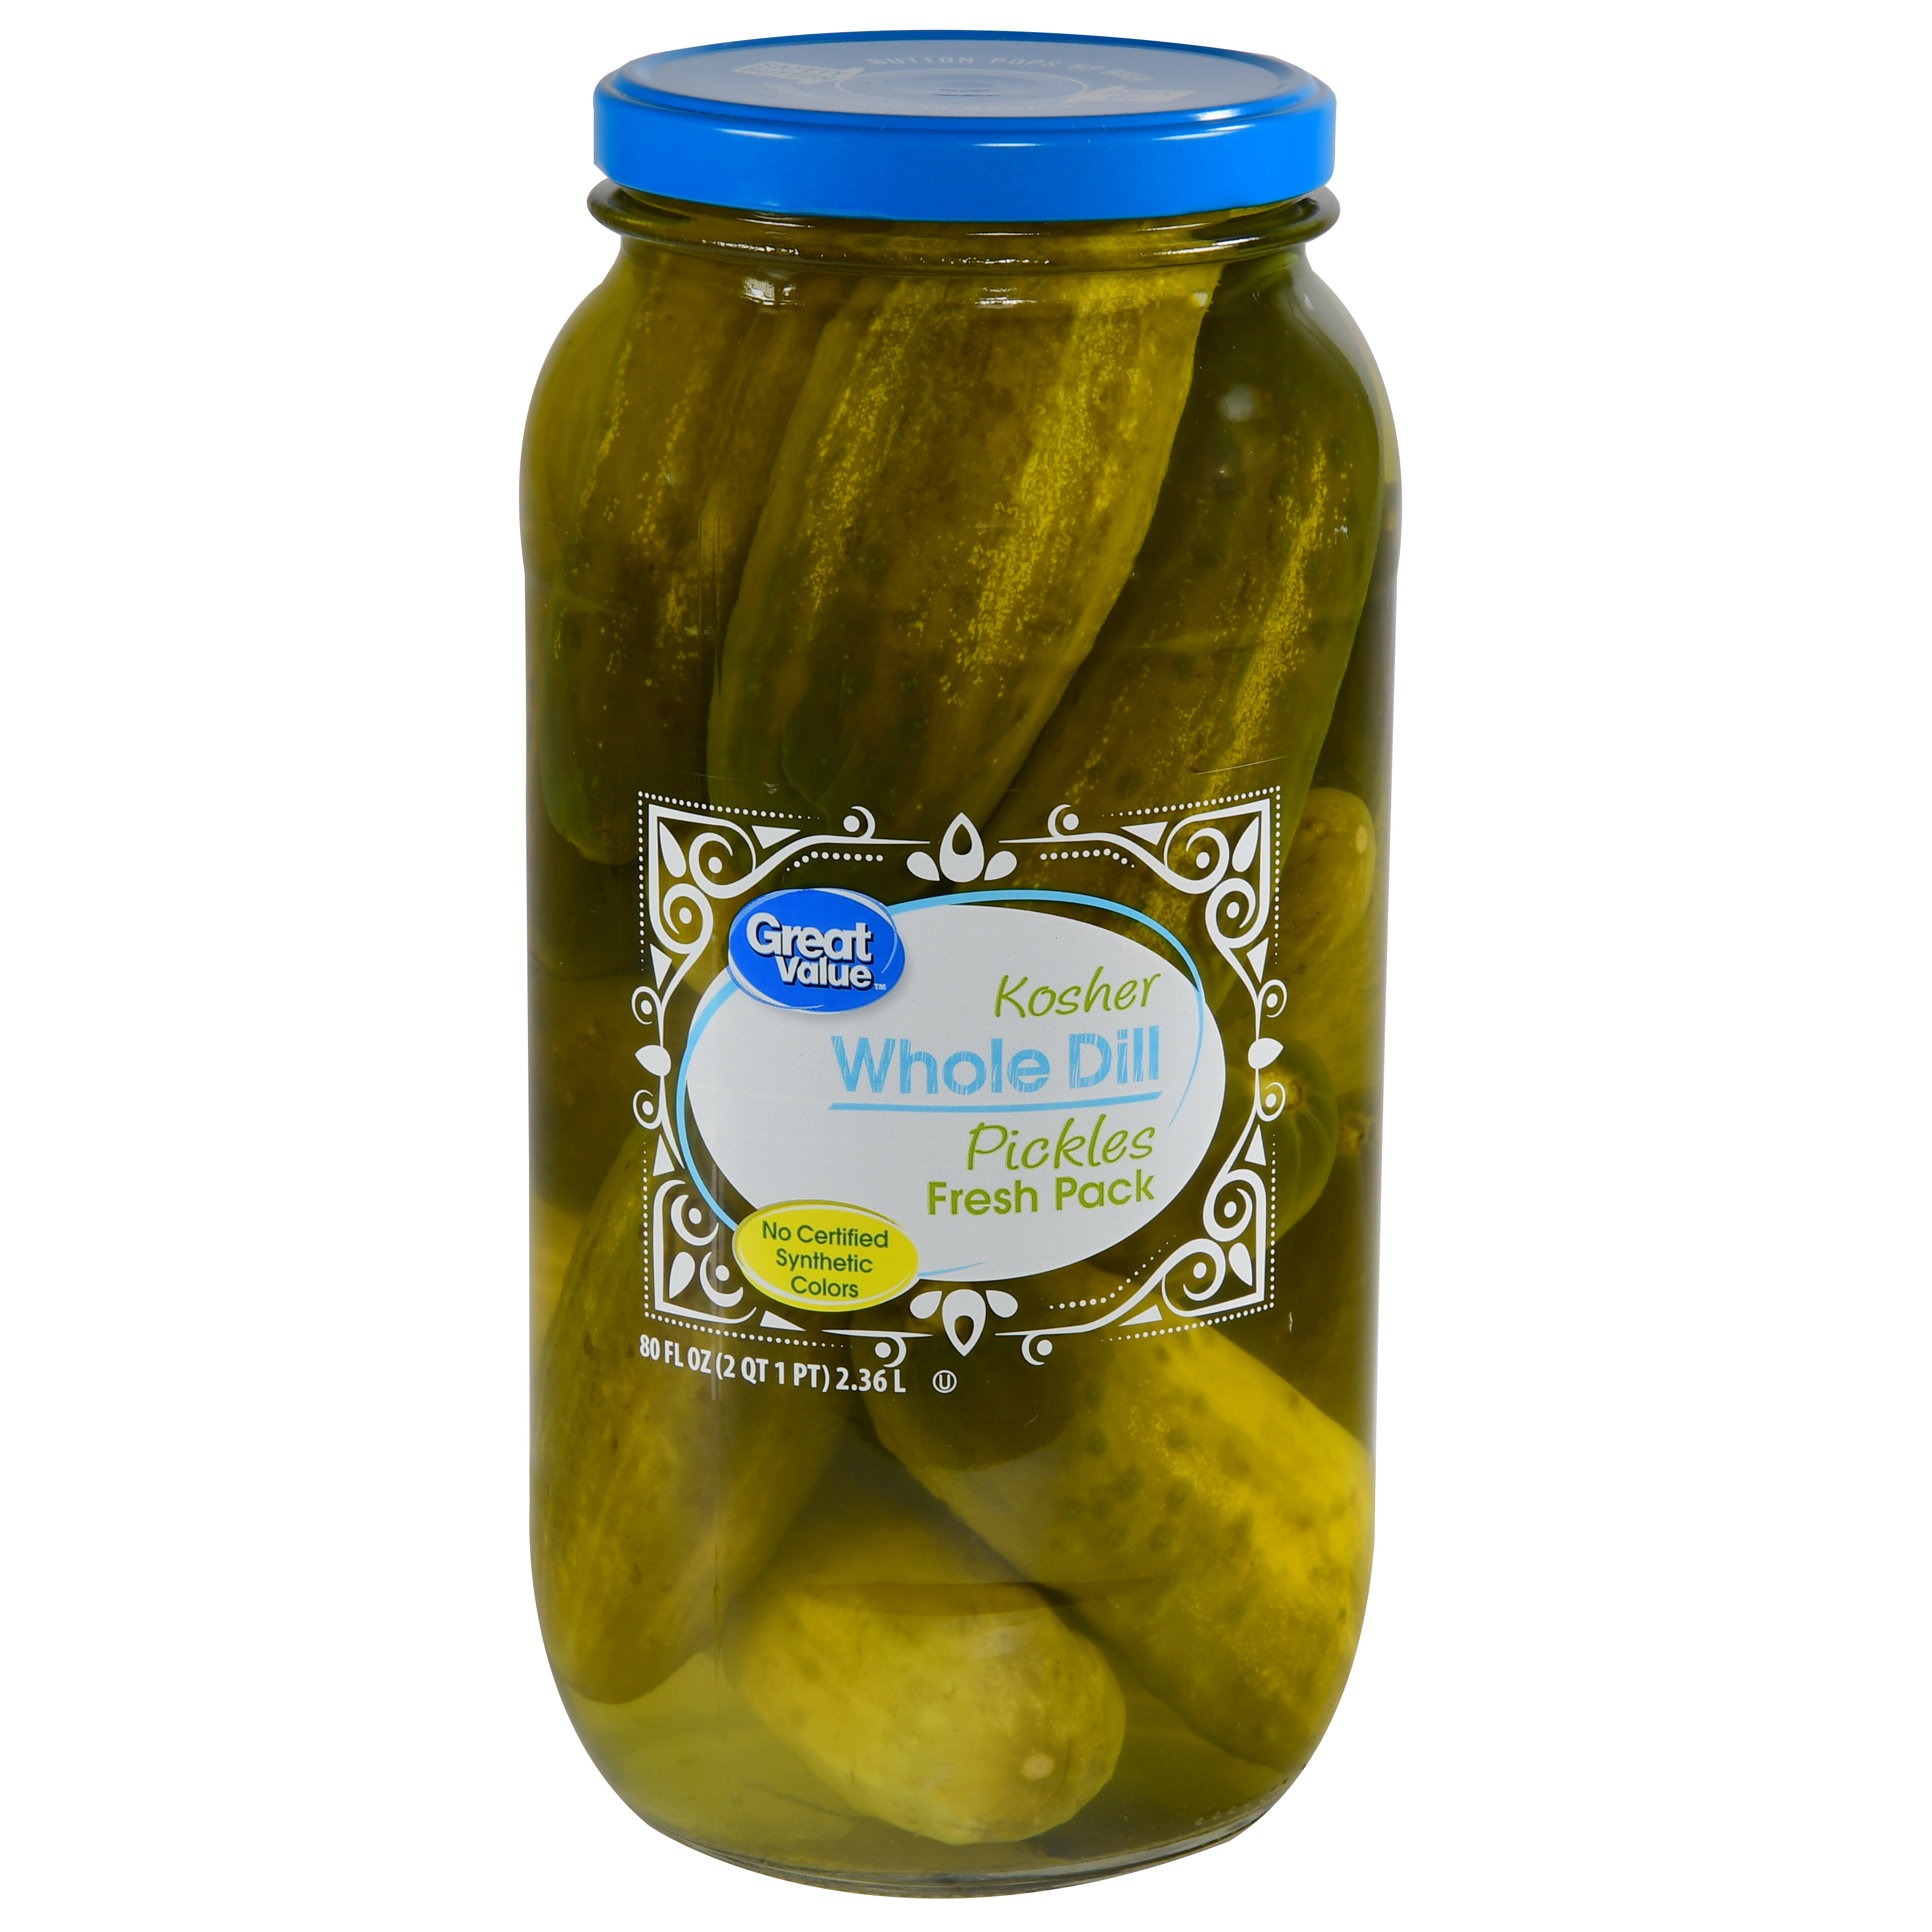 Great Value Kosher Whole Dill Pickles, 80 fl oz